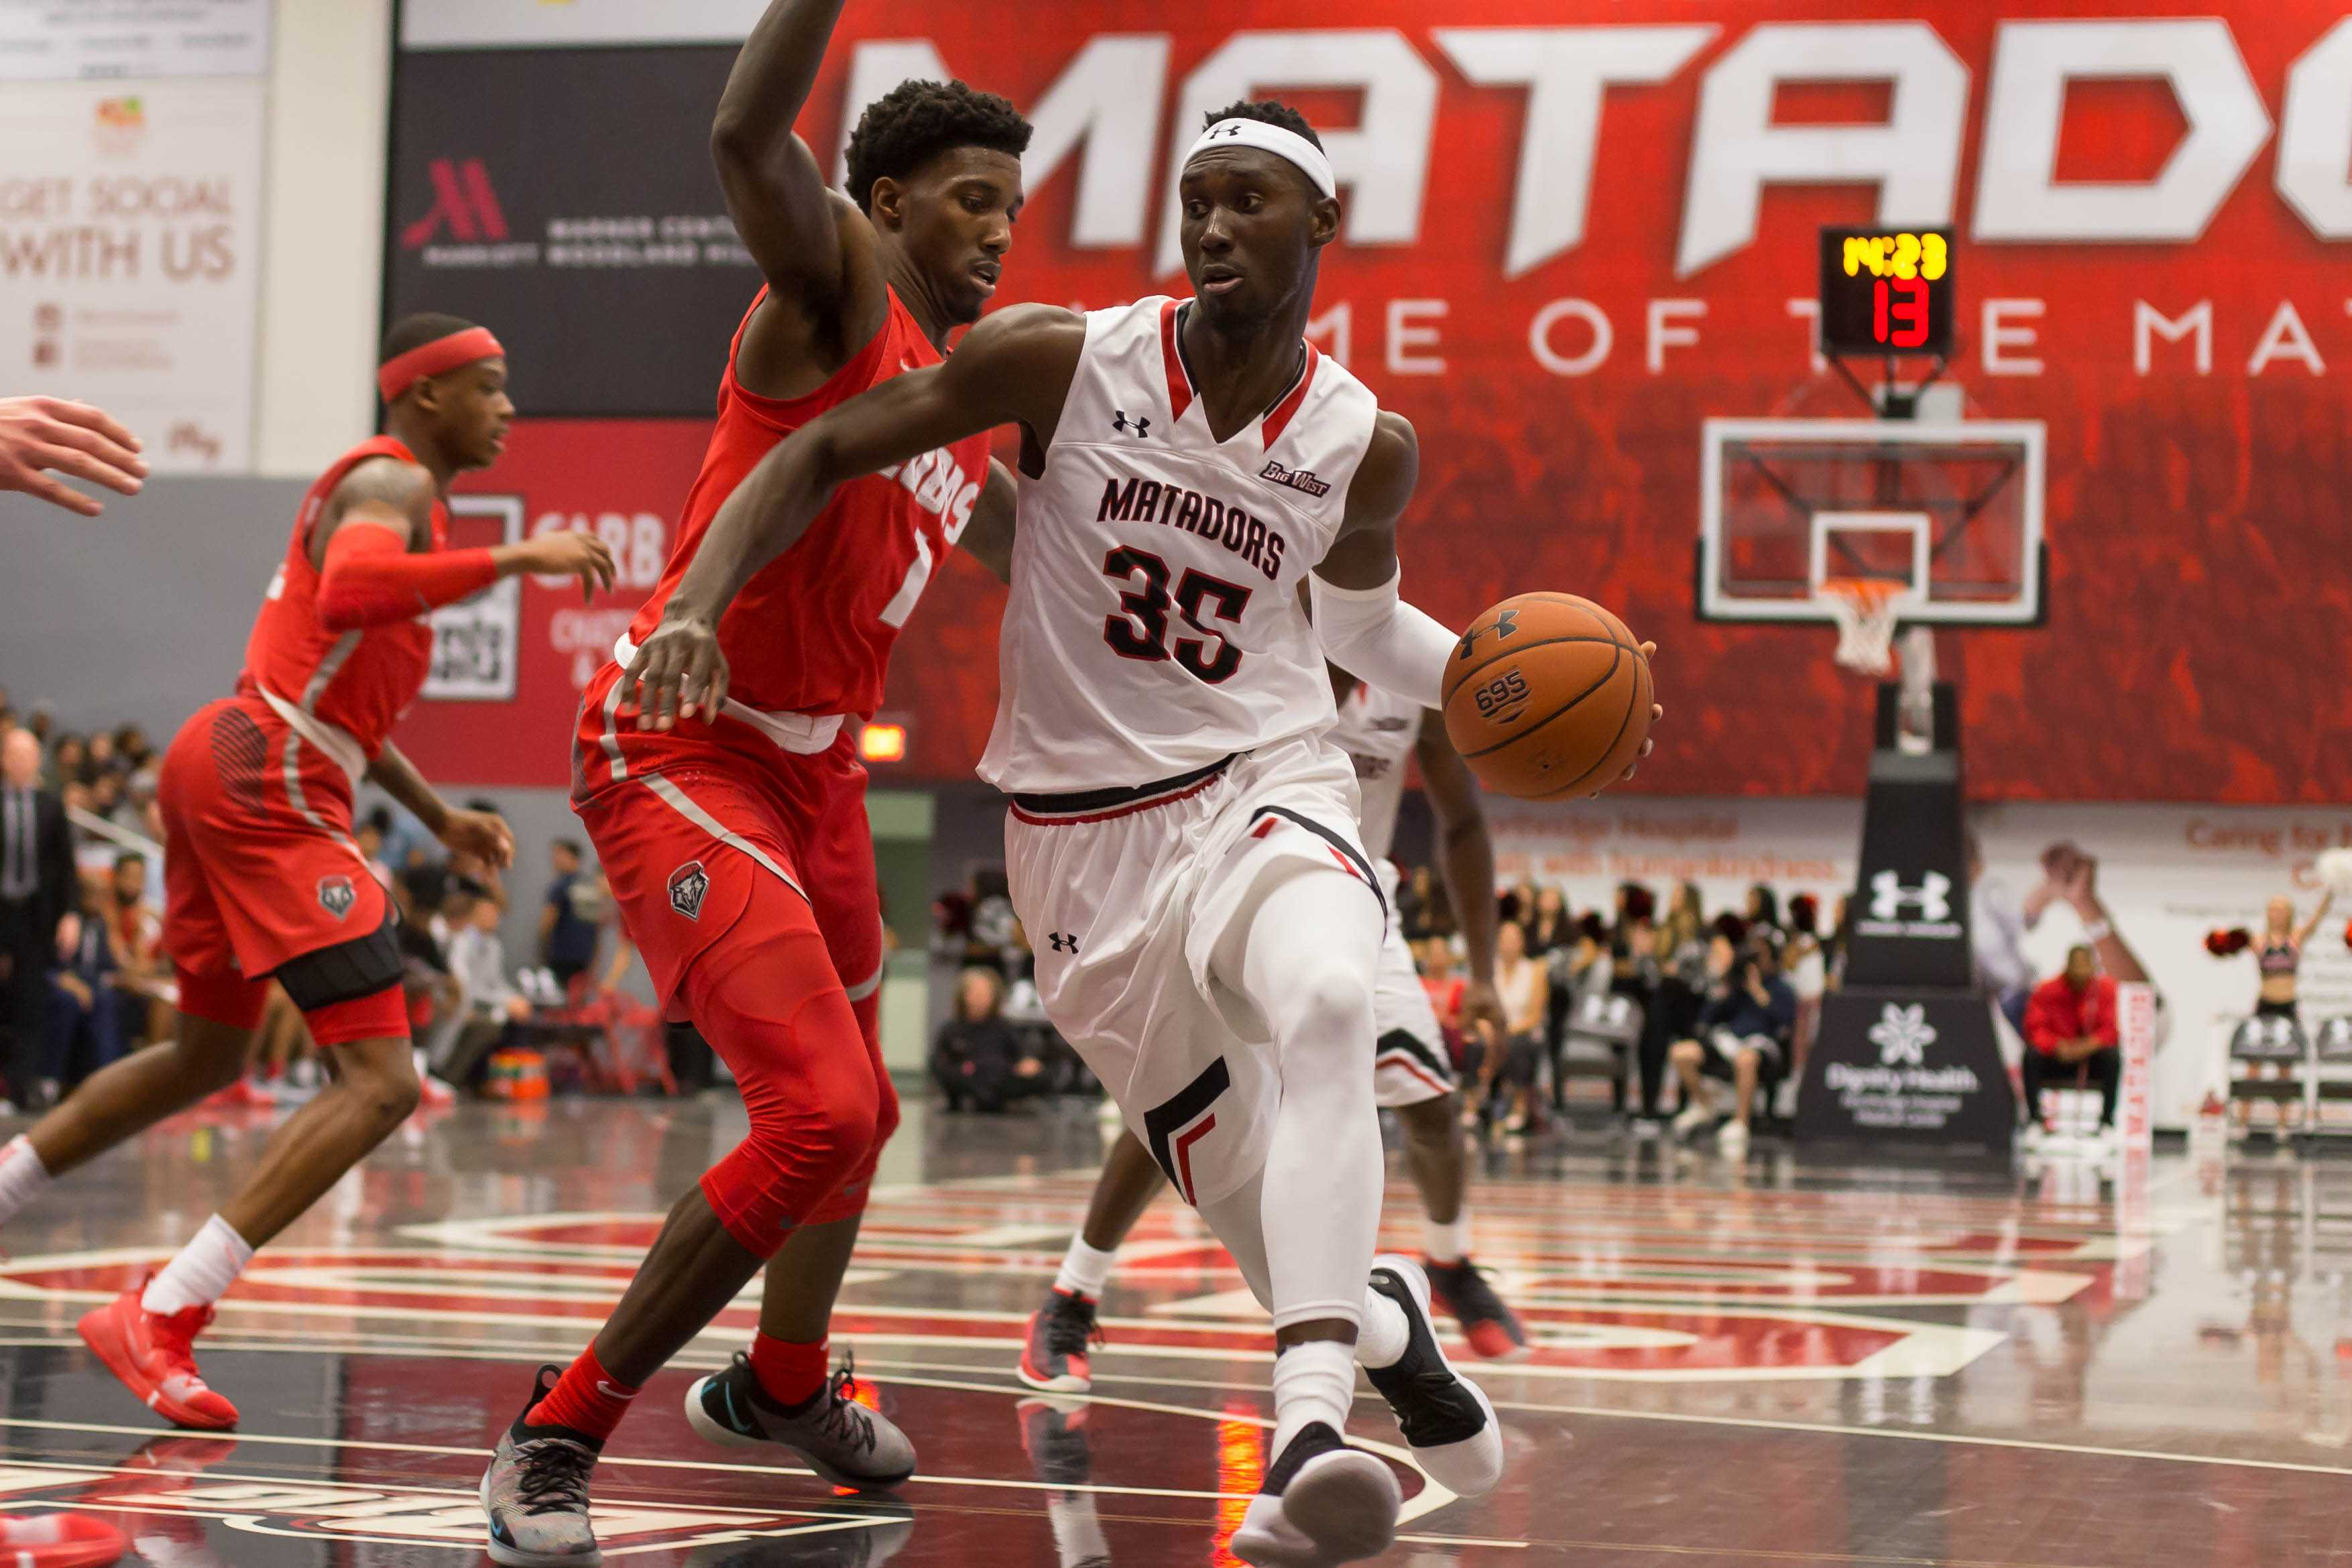 Redshirt freshman Lamine Diane drives in to the paint in a 84-87 loss vs New Mexico Photo credit: John Hernandez